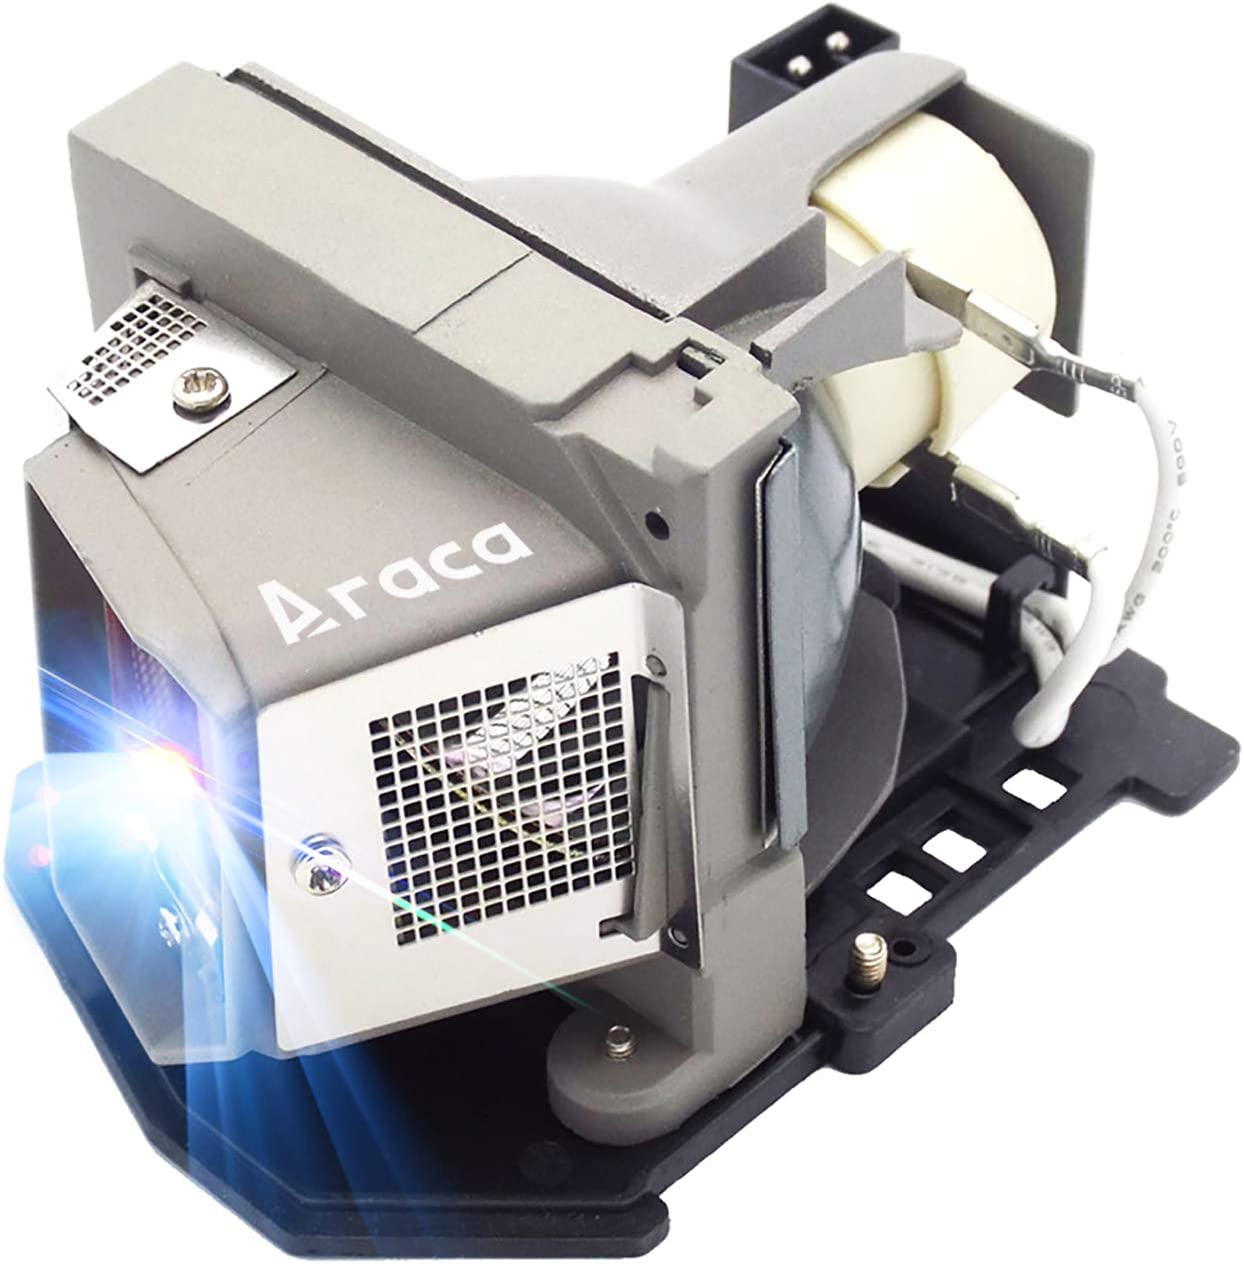 Araca BL-FU185A /SP.8EH01GC01 /1210S /725-10193/317-2531 Replacement Projector Lamp with Housing for HD66 PRO250X HD6700 TX536 EW536 HD600X HD67 HD67N PRO150S TW536 PRO350W DELL 1210S Projector